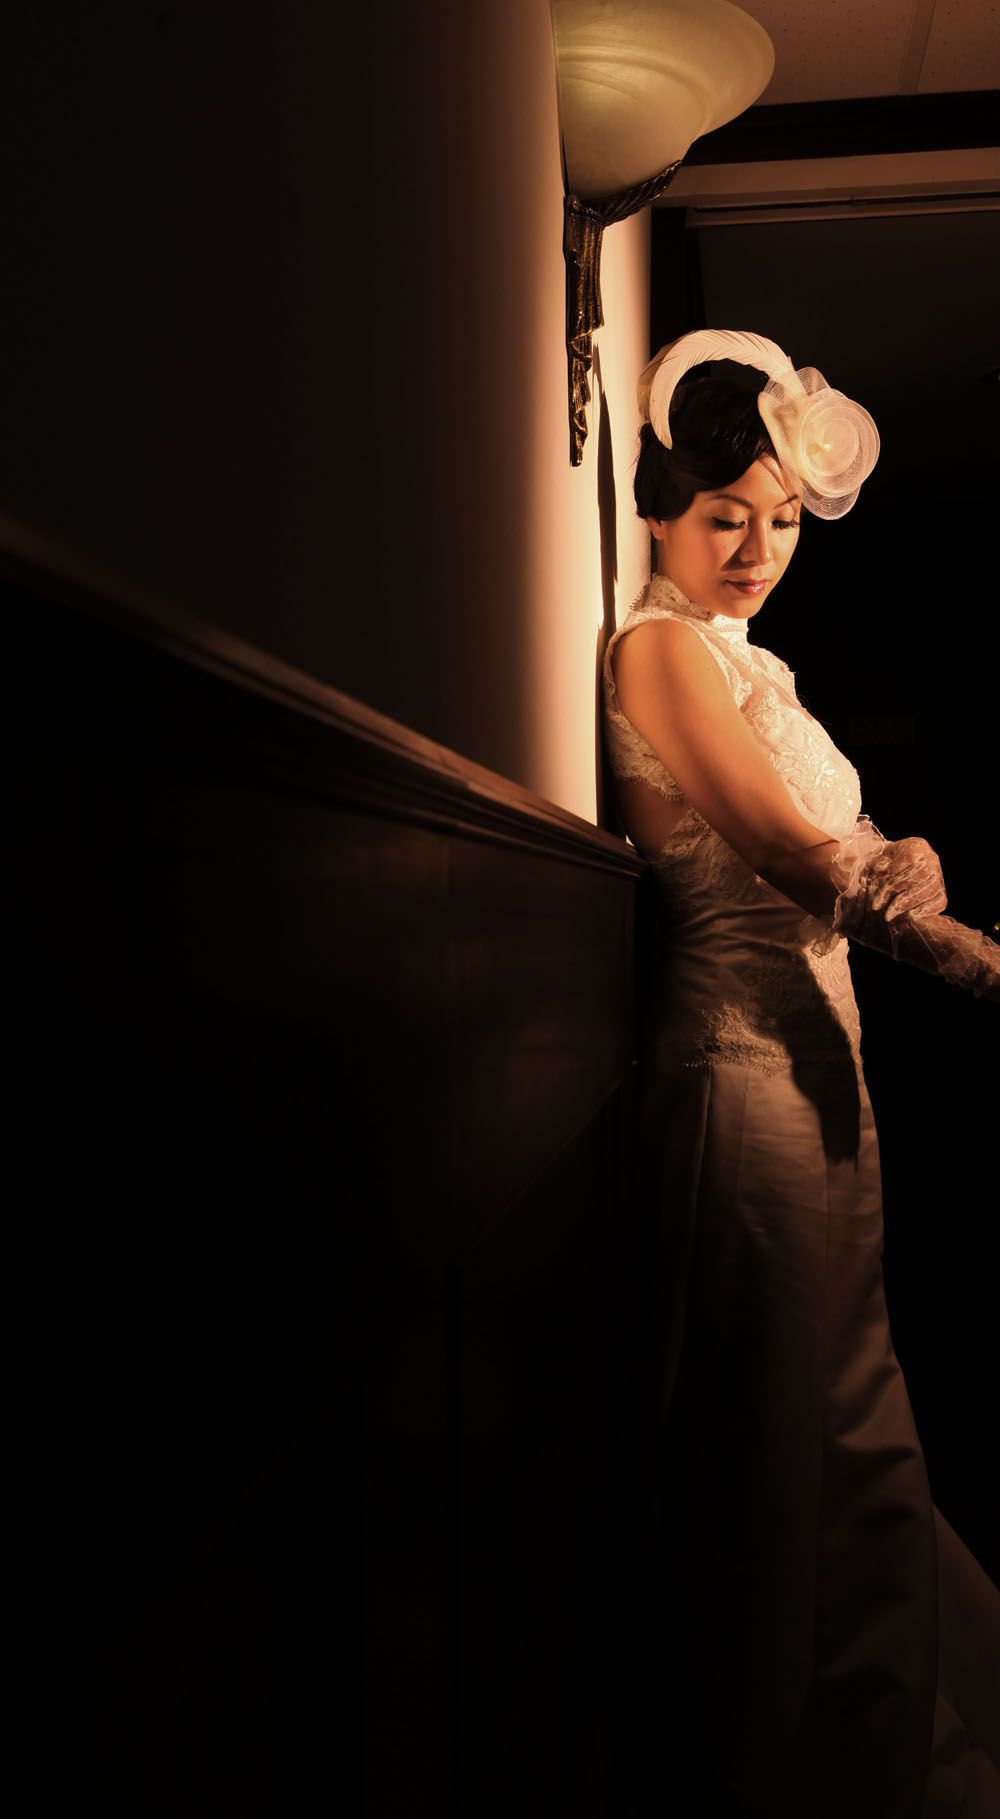 This photog has good stuff - Alexander Hera Hong Kong pre-wedding photo. http://www.alexanderhera.com